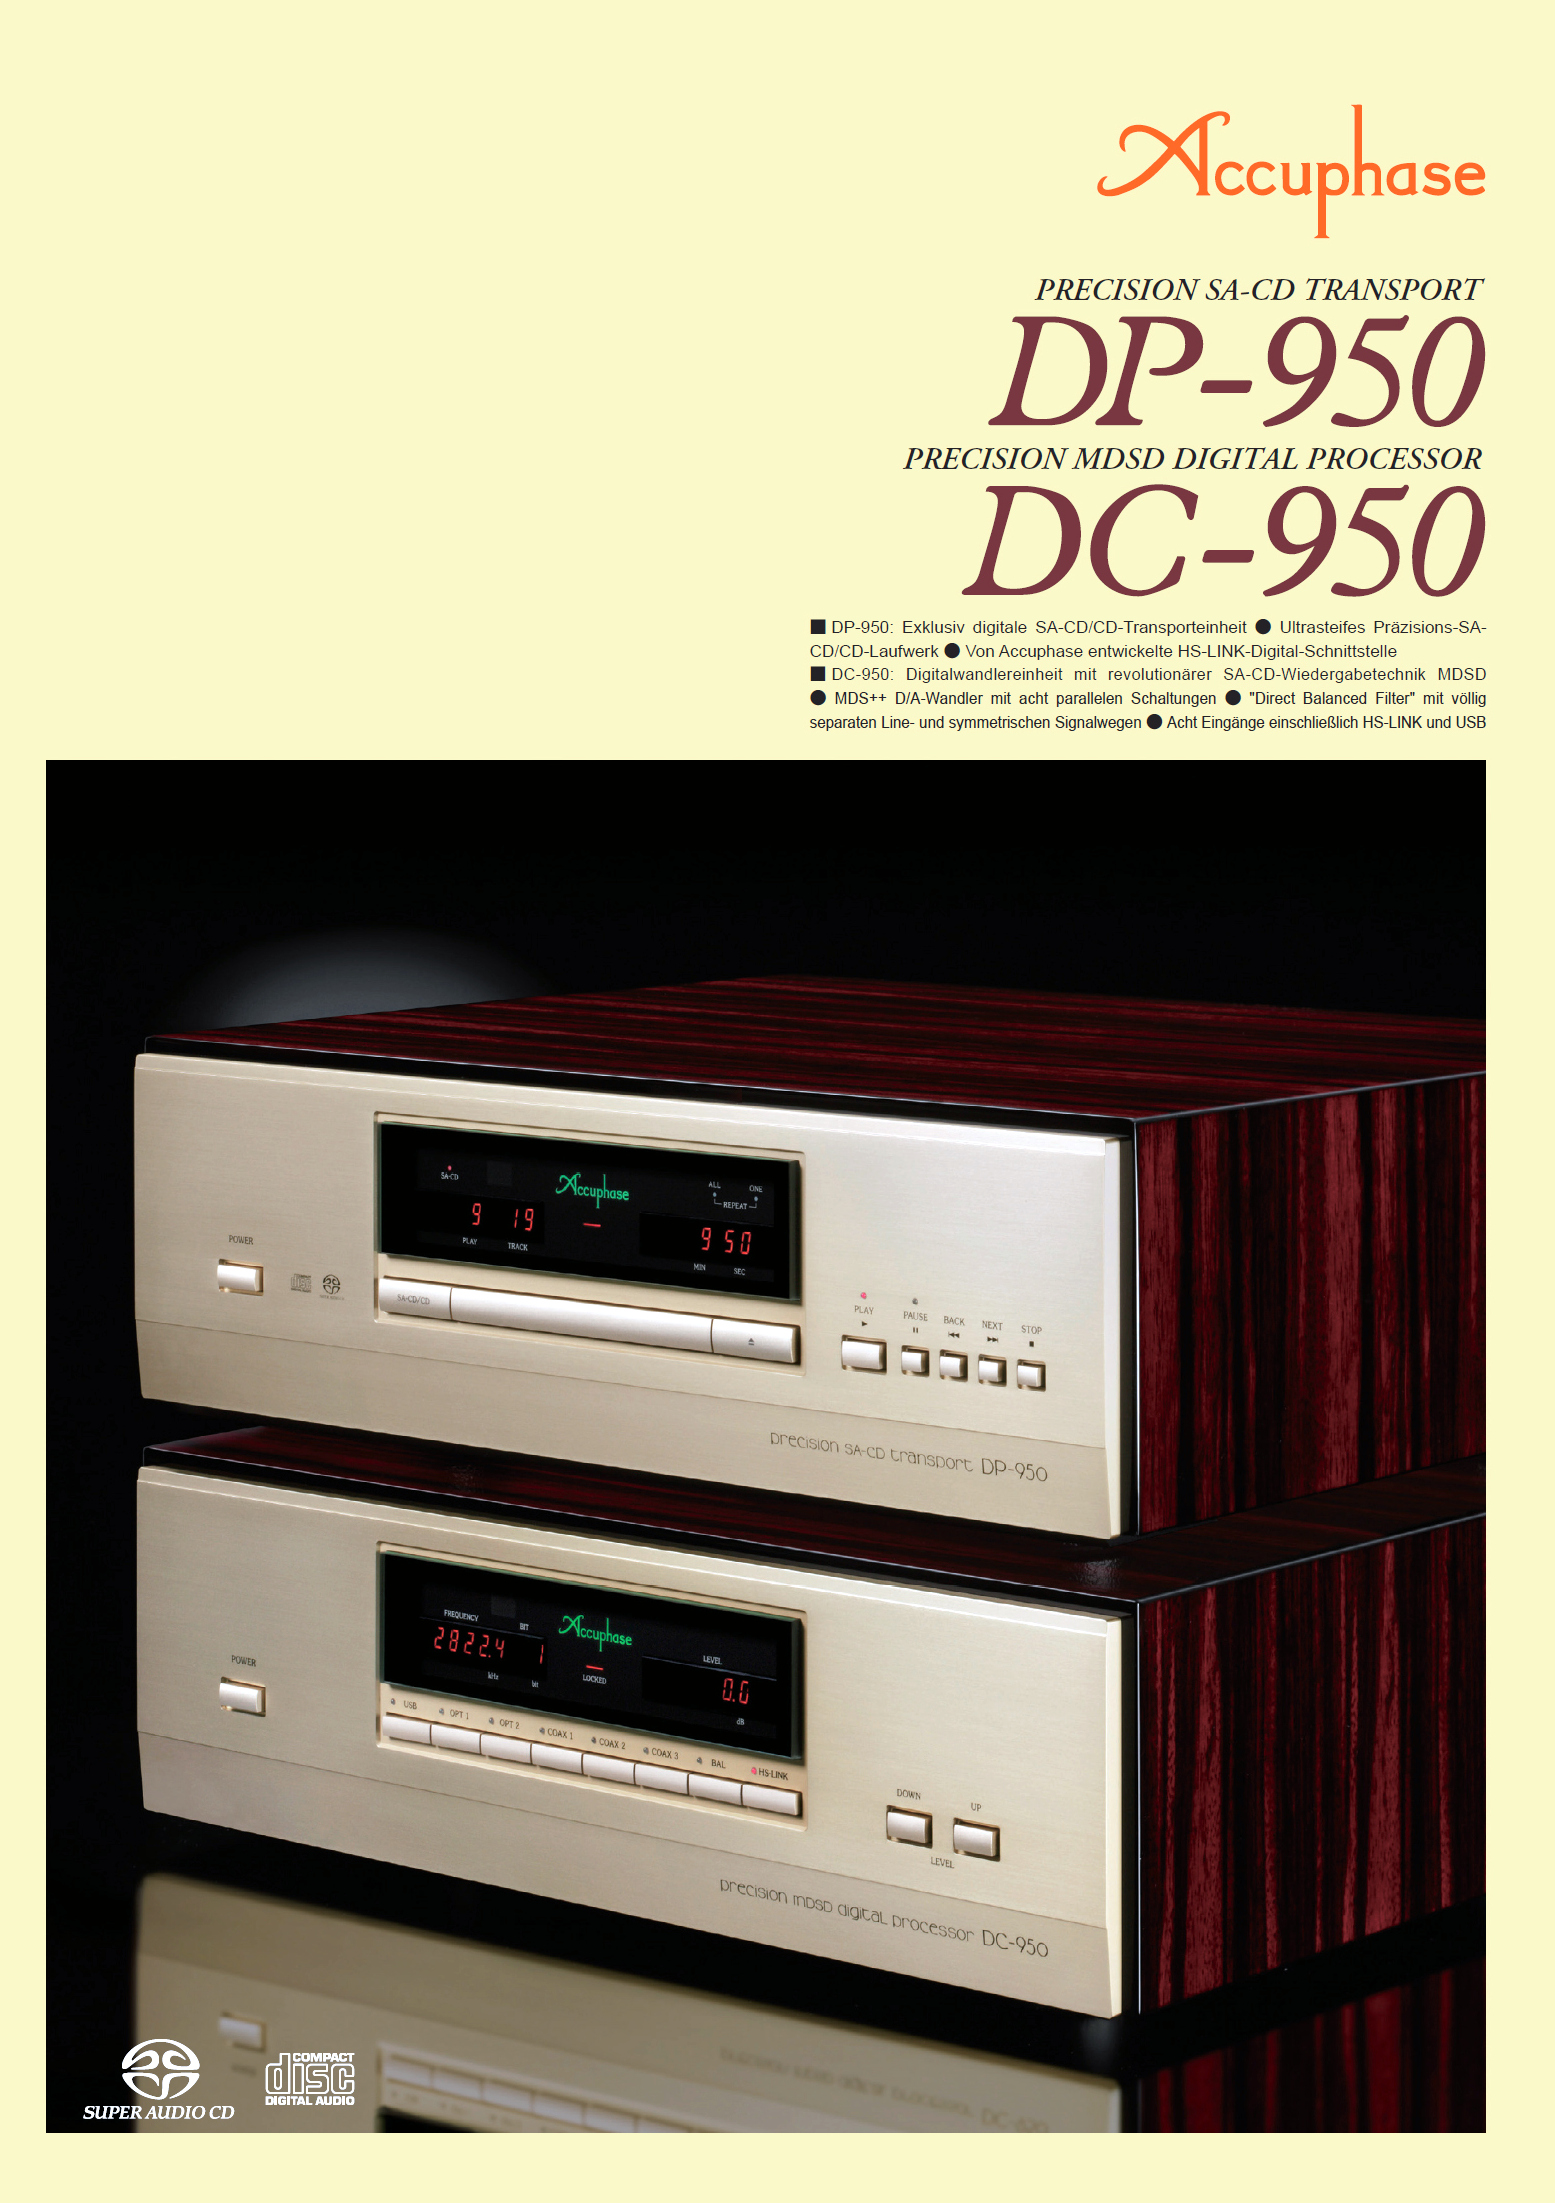 Accuphase DC-DP-950-Prospekt-1.jpg